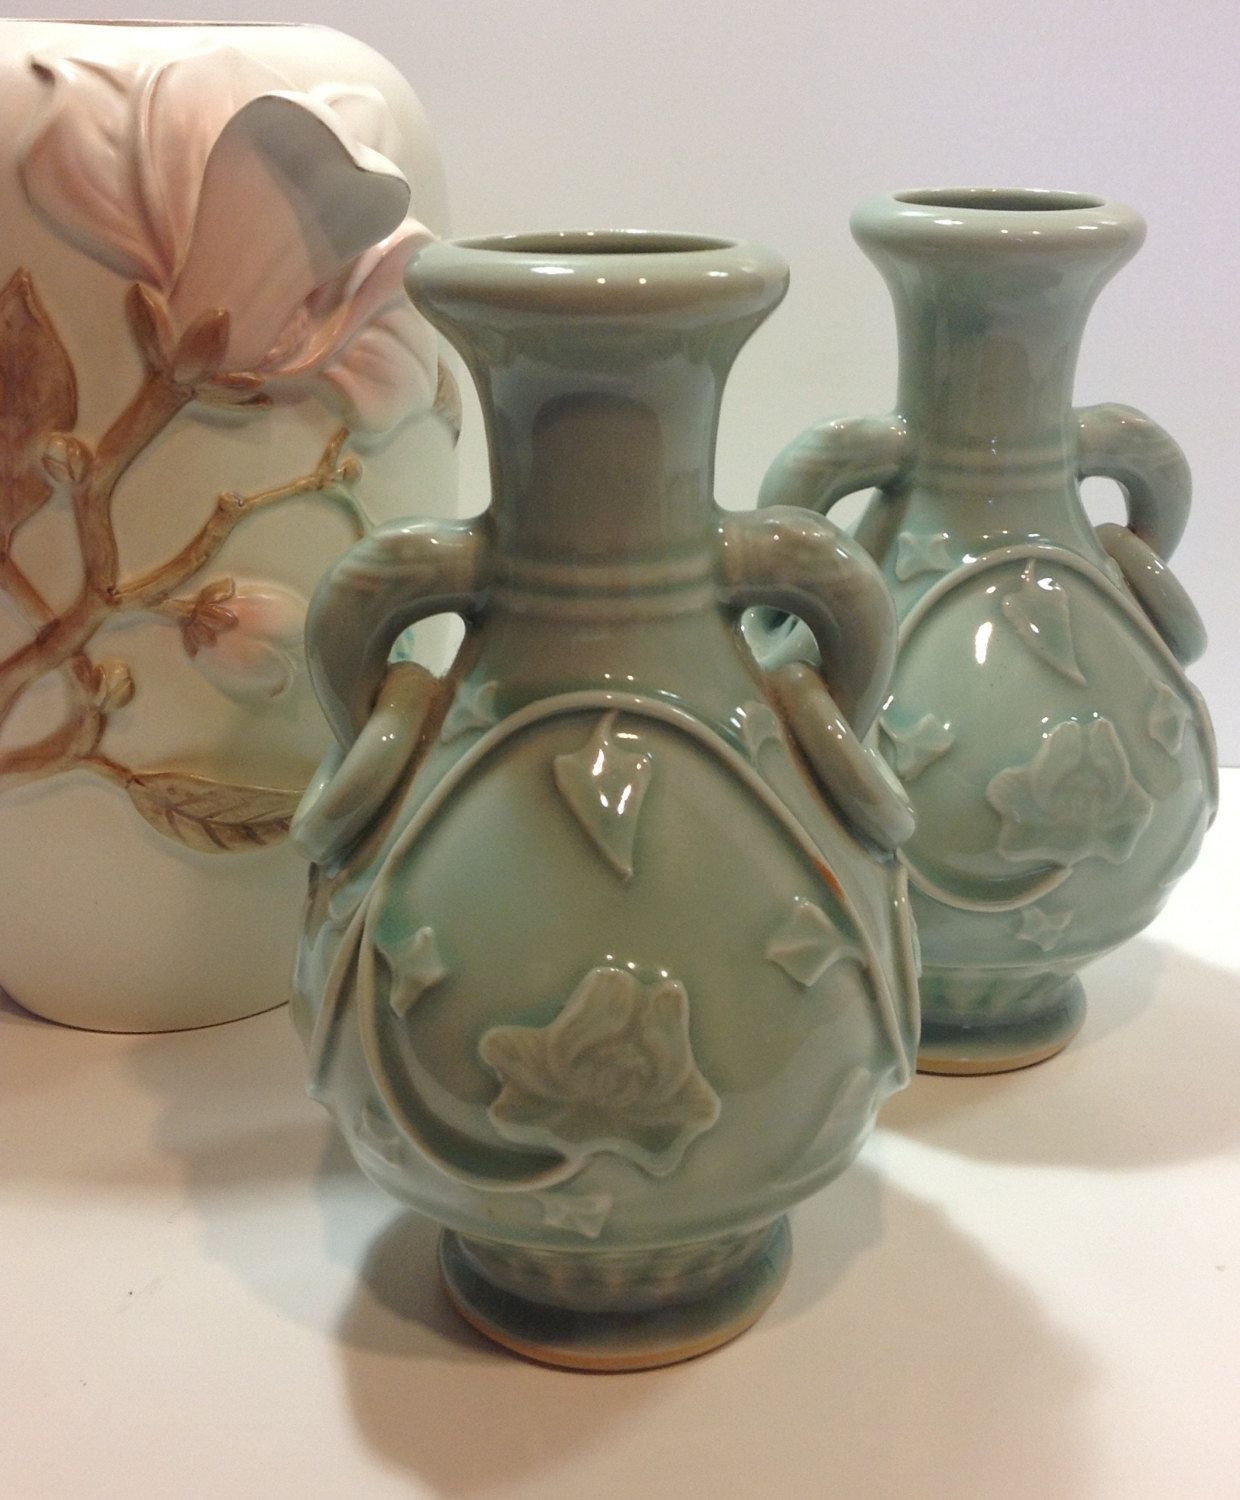 antique bristol blue glass vase of ceramic vase set pics vintage asian style vases celadon set of in ceramic vase set pics vintage asian style vases celadon set of longquan style decor vase